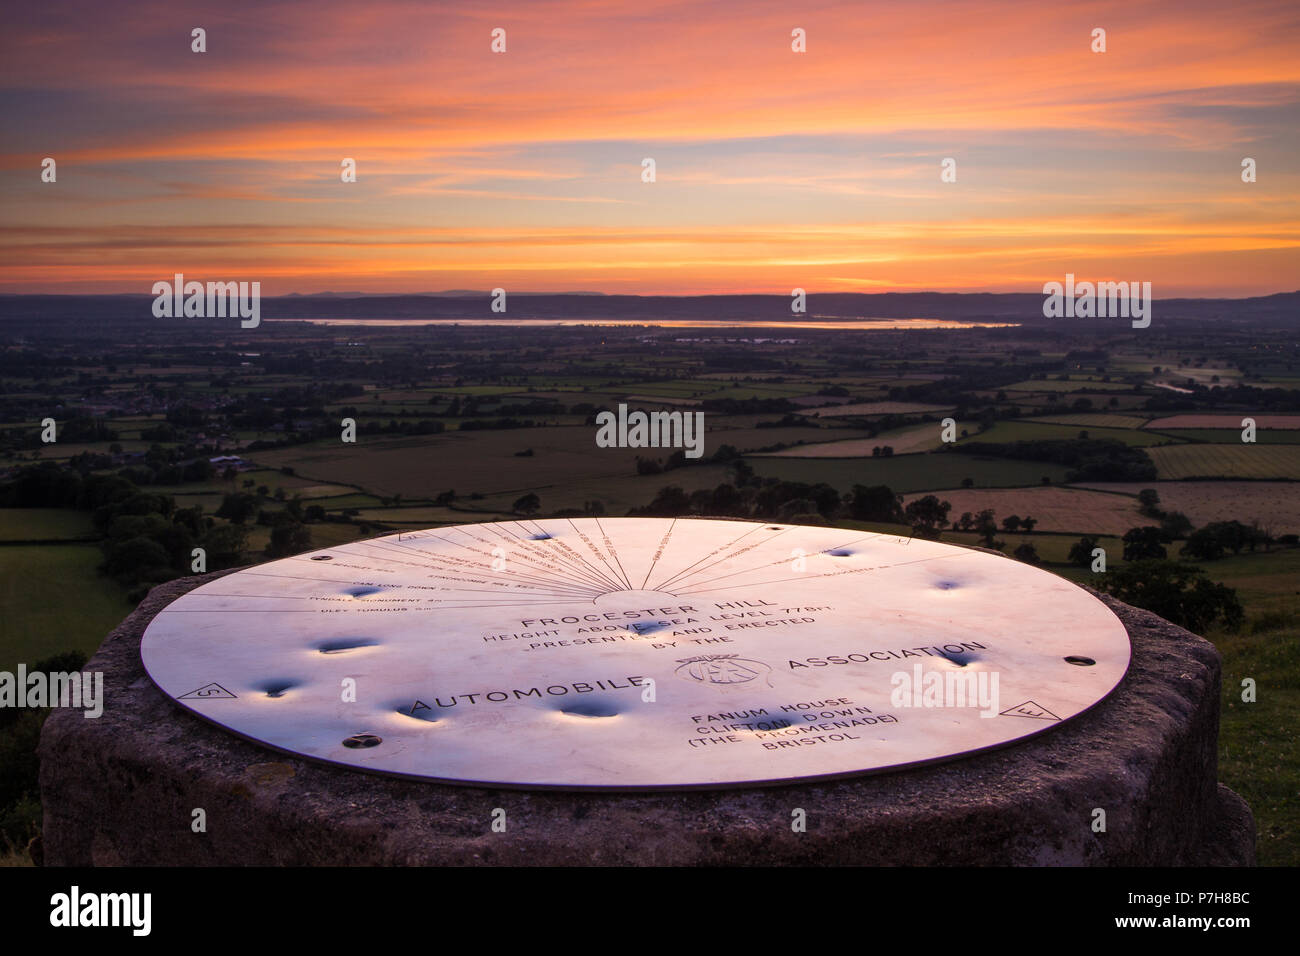 The topograph at Frocester Hill, Gloucestershire at sunset. Stock Photo